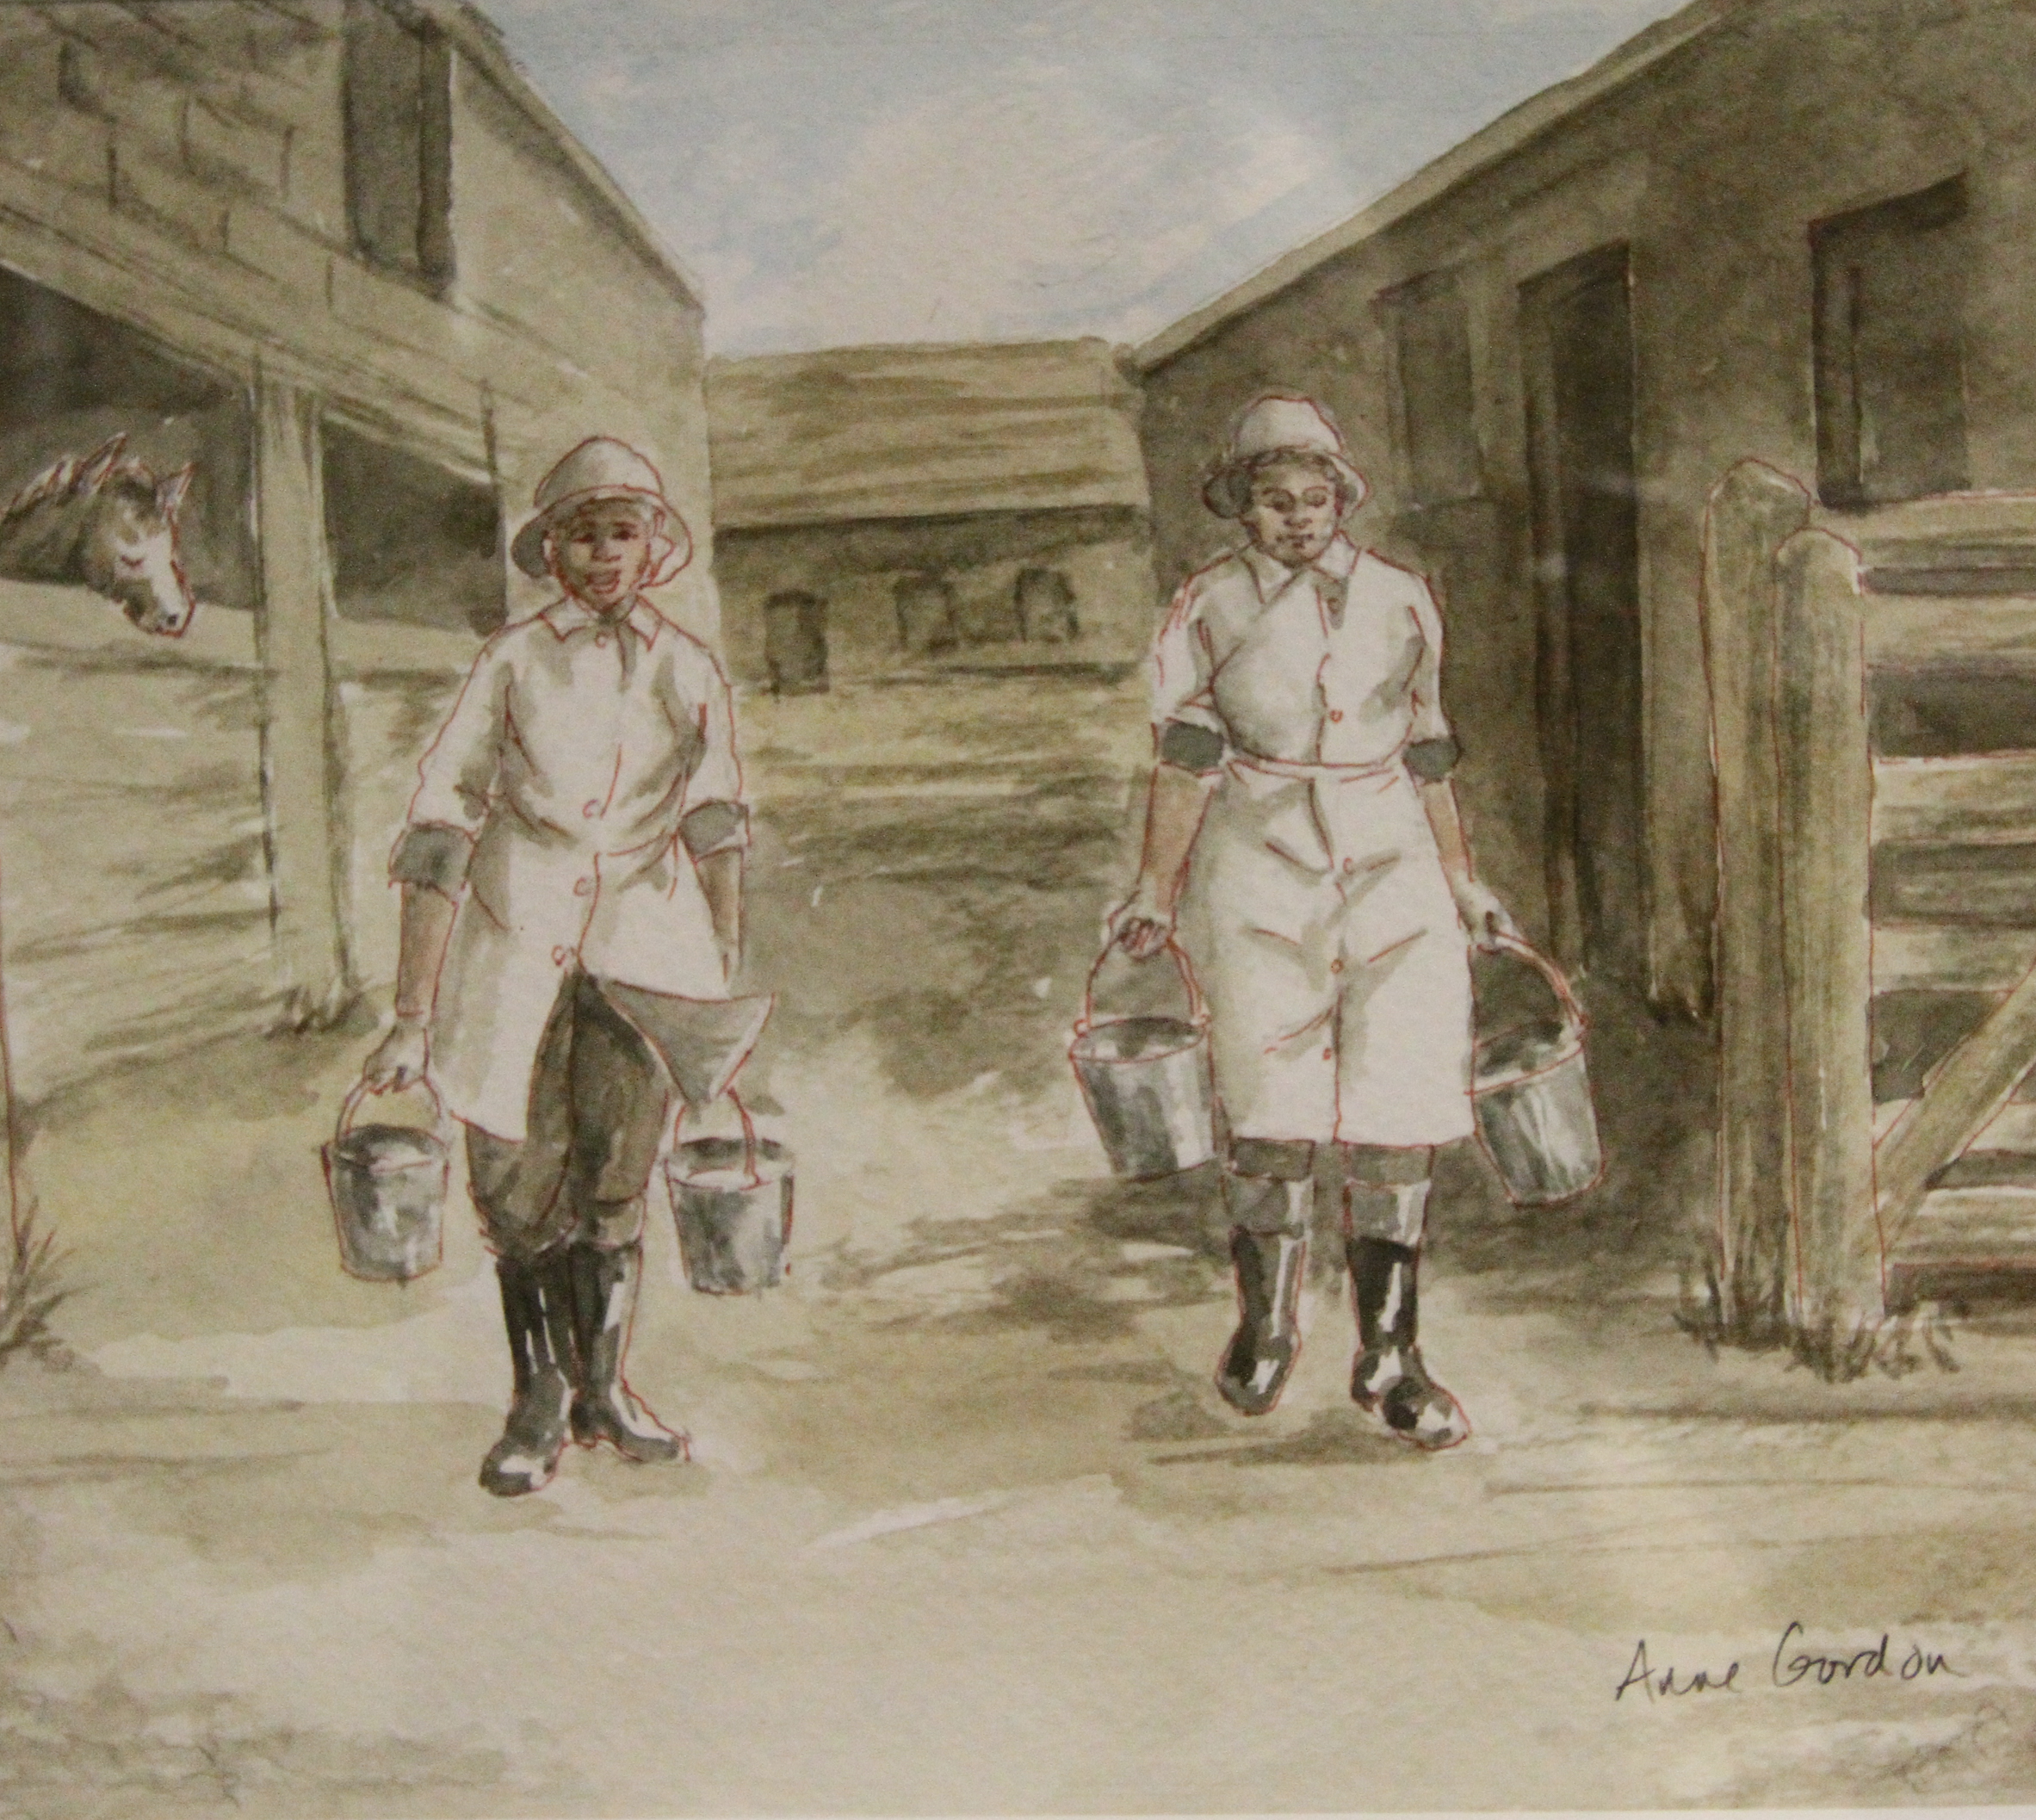 The Home Front Land Girls